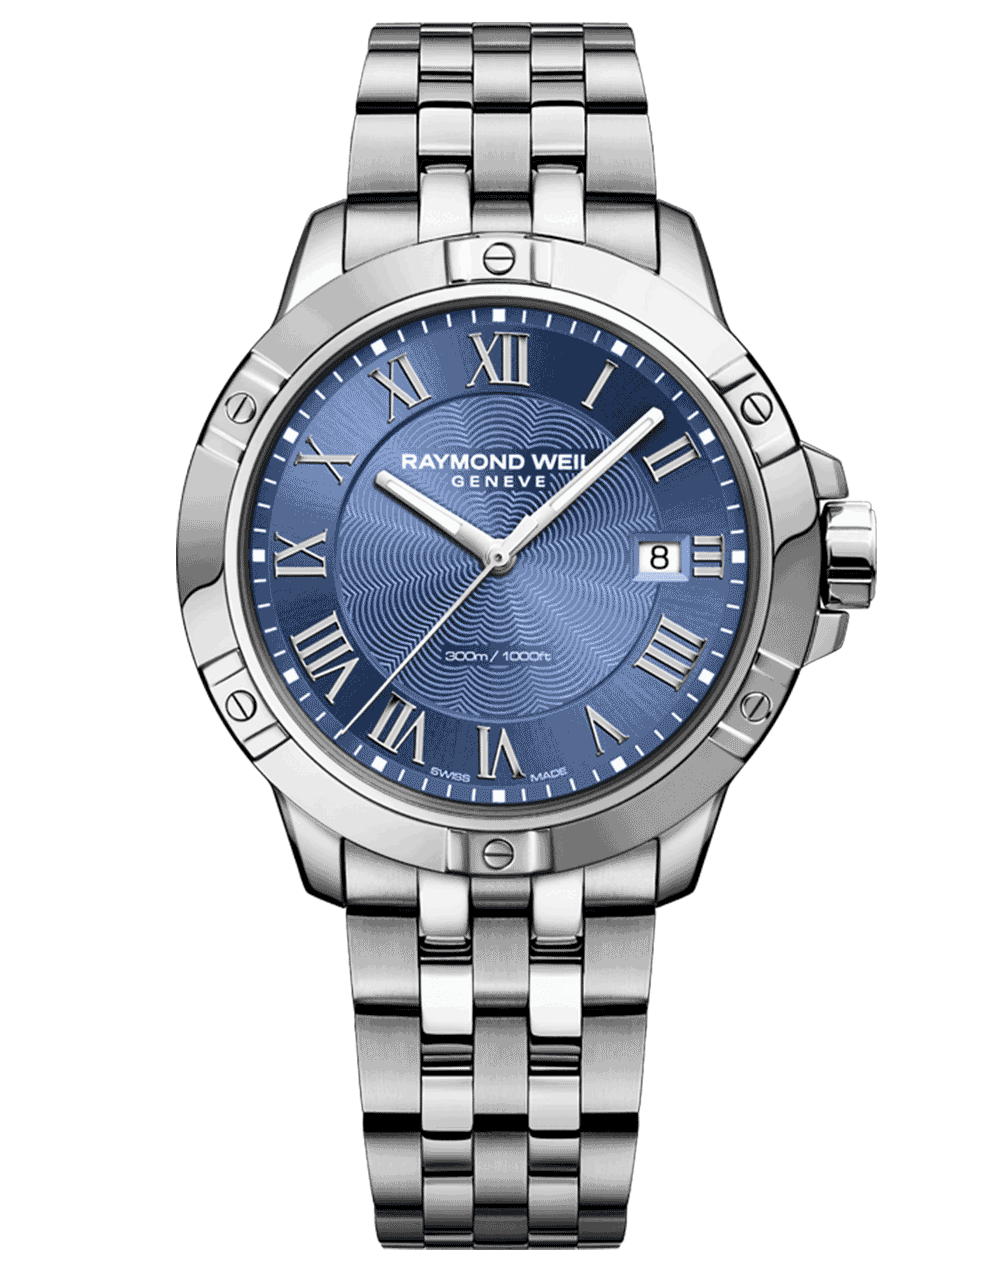 RAYMOND WEIL Geneve Tango Luxury Watch